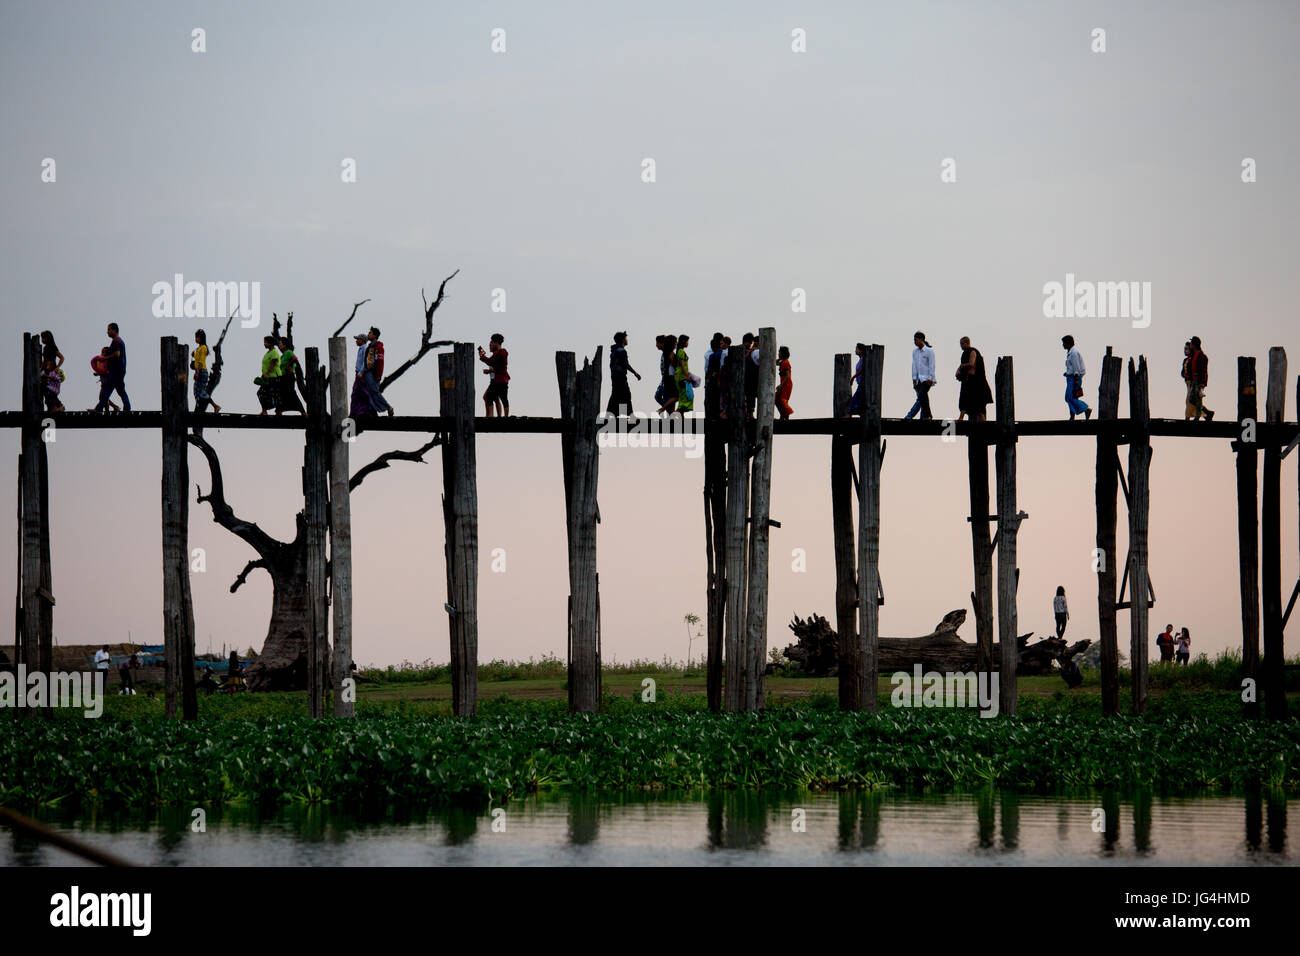 Silhouettes on U-Bein bridge at sunset in Myanmar, south East Asia Stock Photo